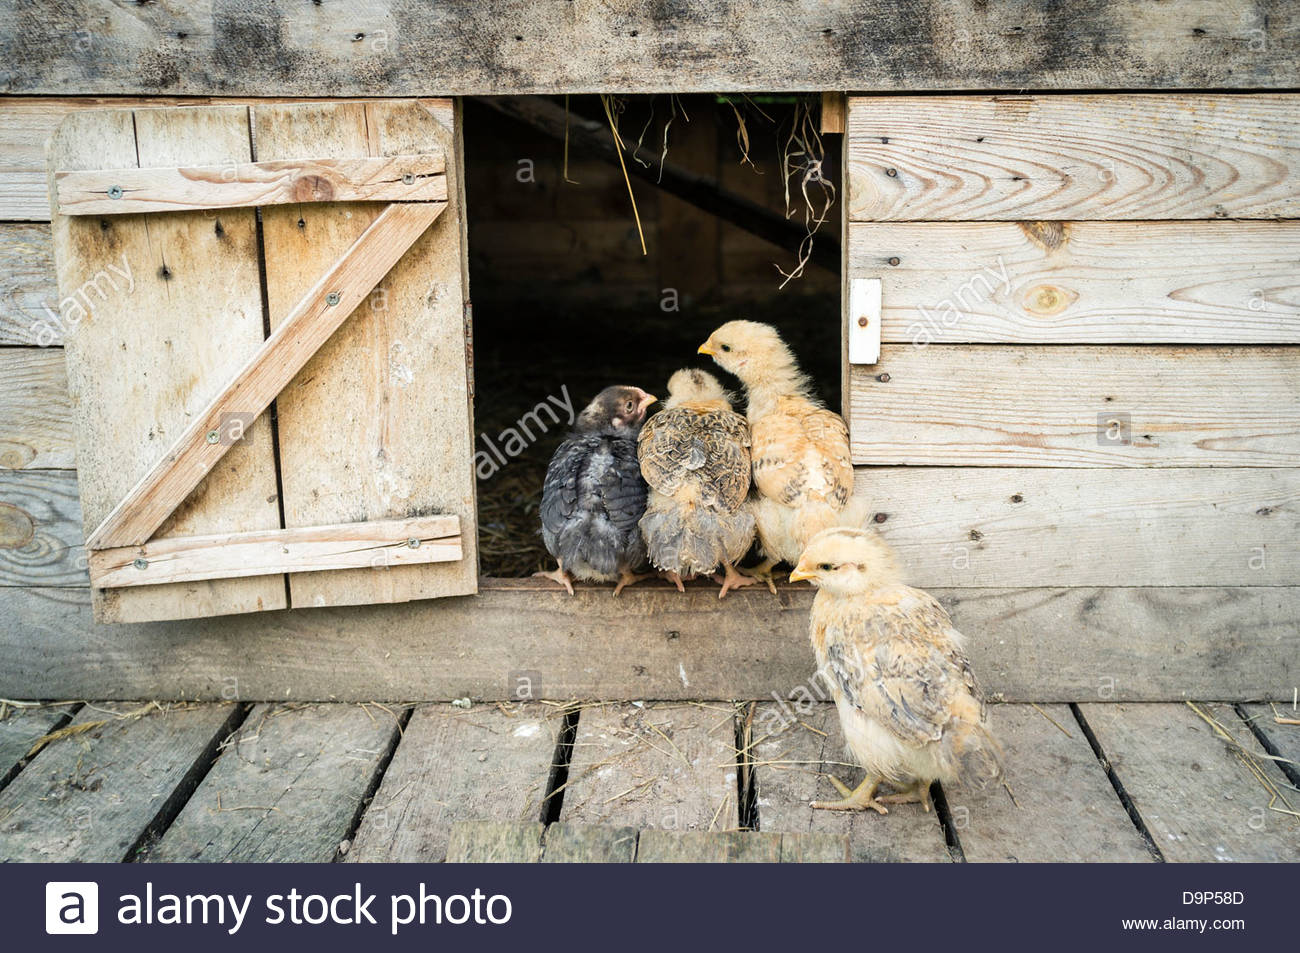 Baby chickens (three-week-old chicks) sitting at the entrance of the chicken coop - Stock Image